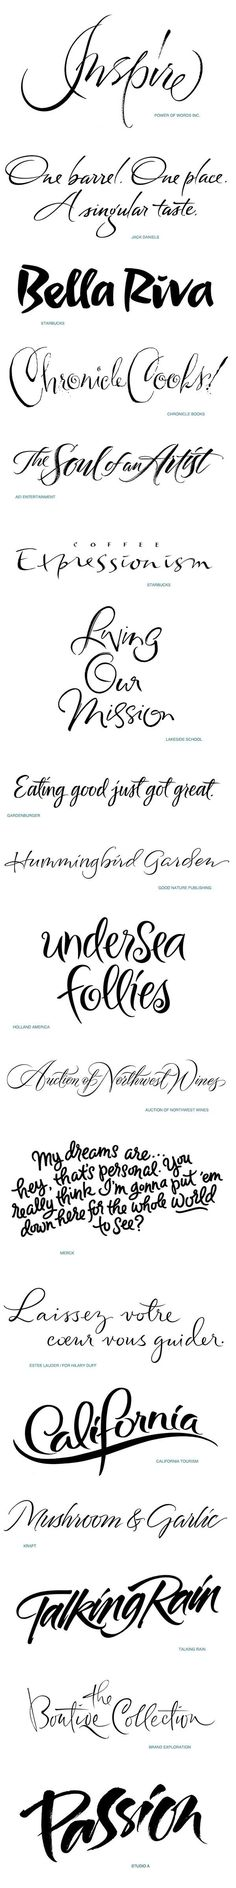 A portfolio of diverse styles of hand lettered scripts, calligraphy and brandmarks. The portfolio includes work used in posters and book publishing, packaging, advertising and brand promotion.